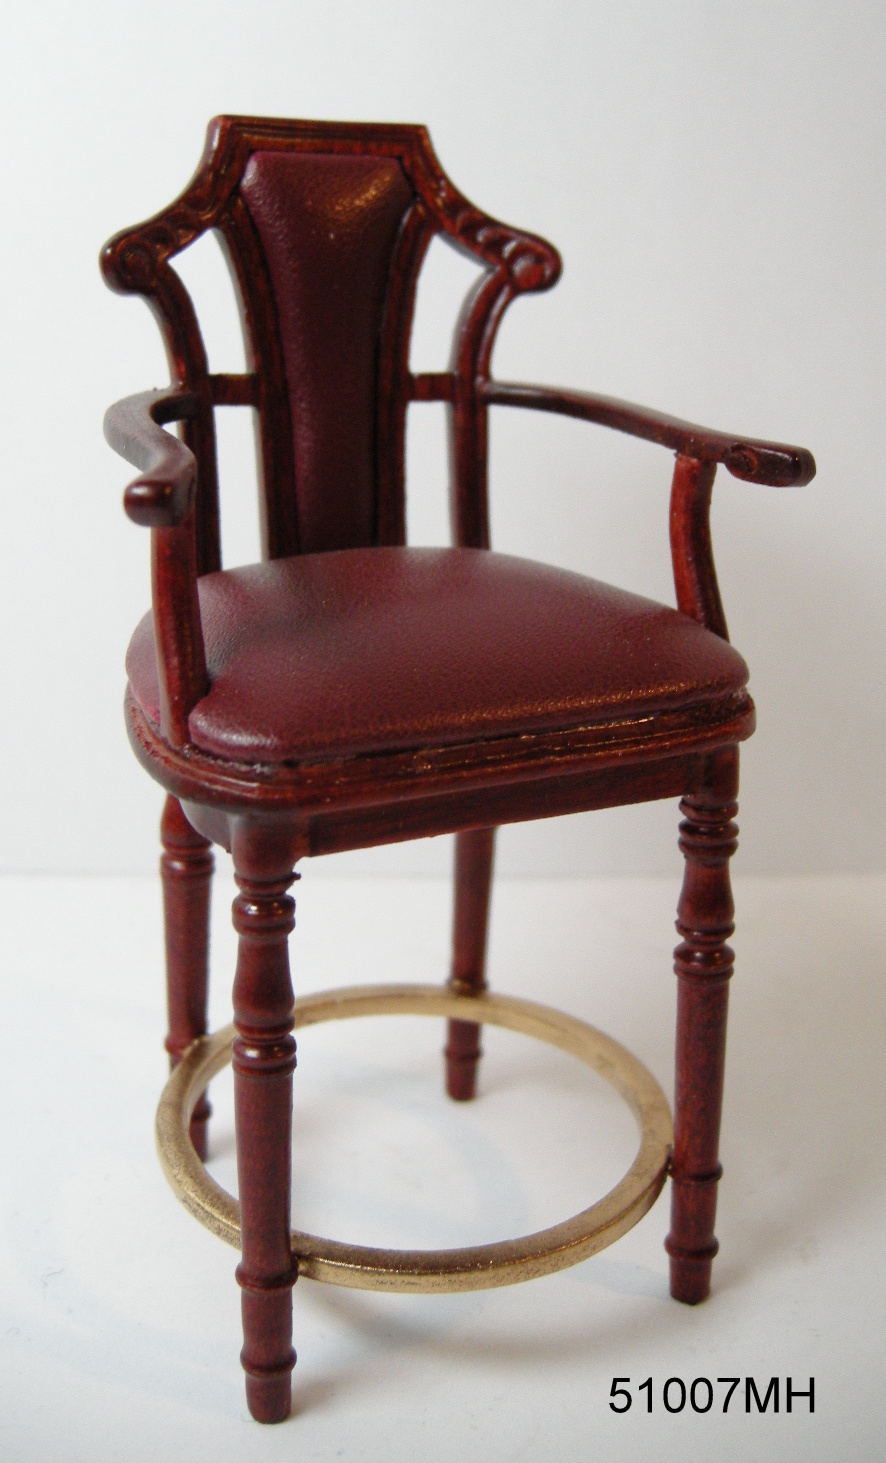 51007MH Burgundy Leather Bar Stool - mahogany